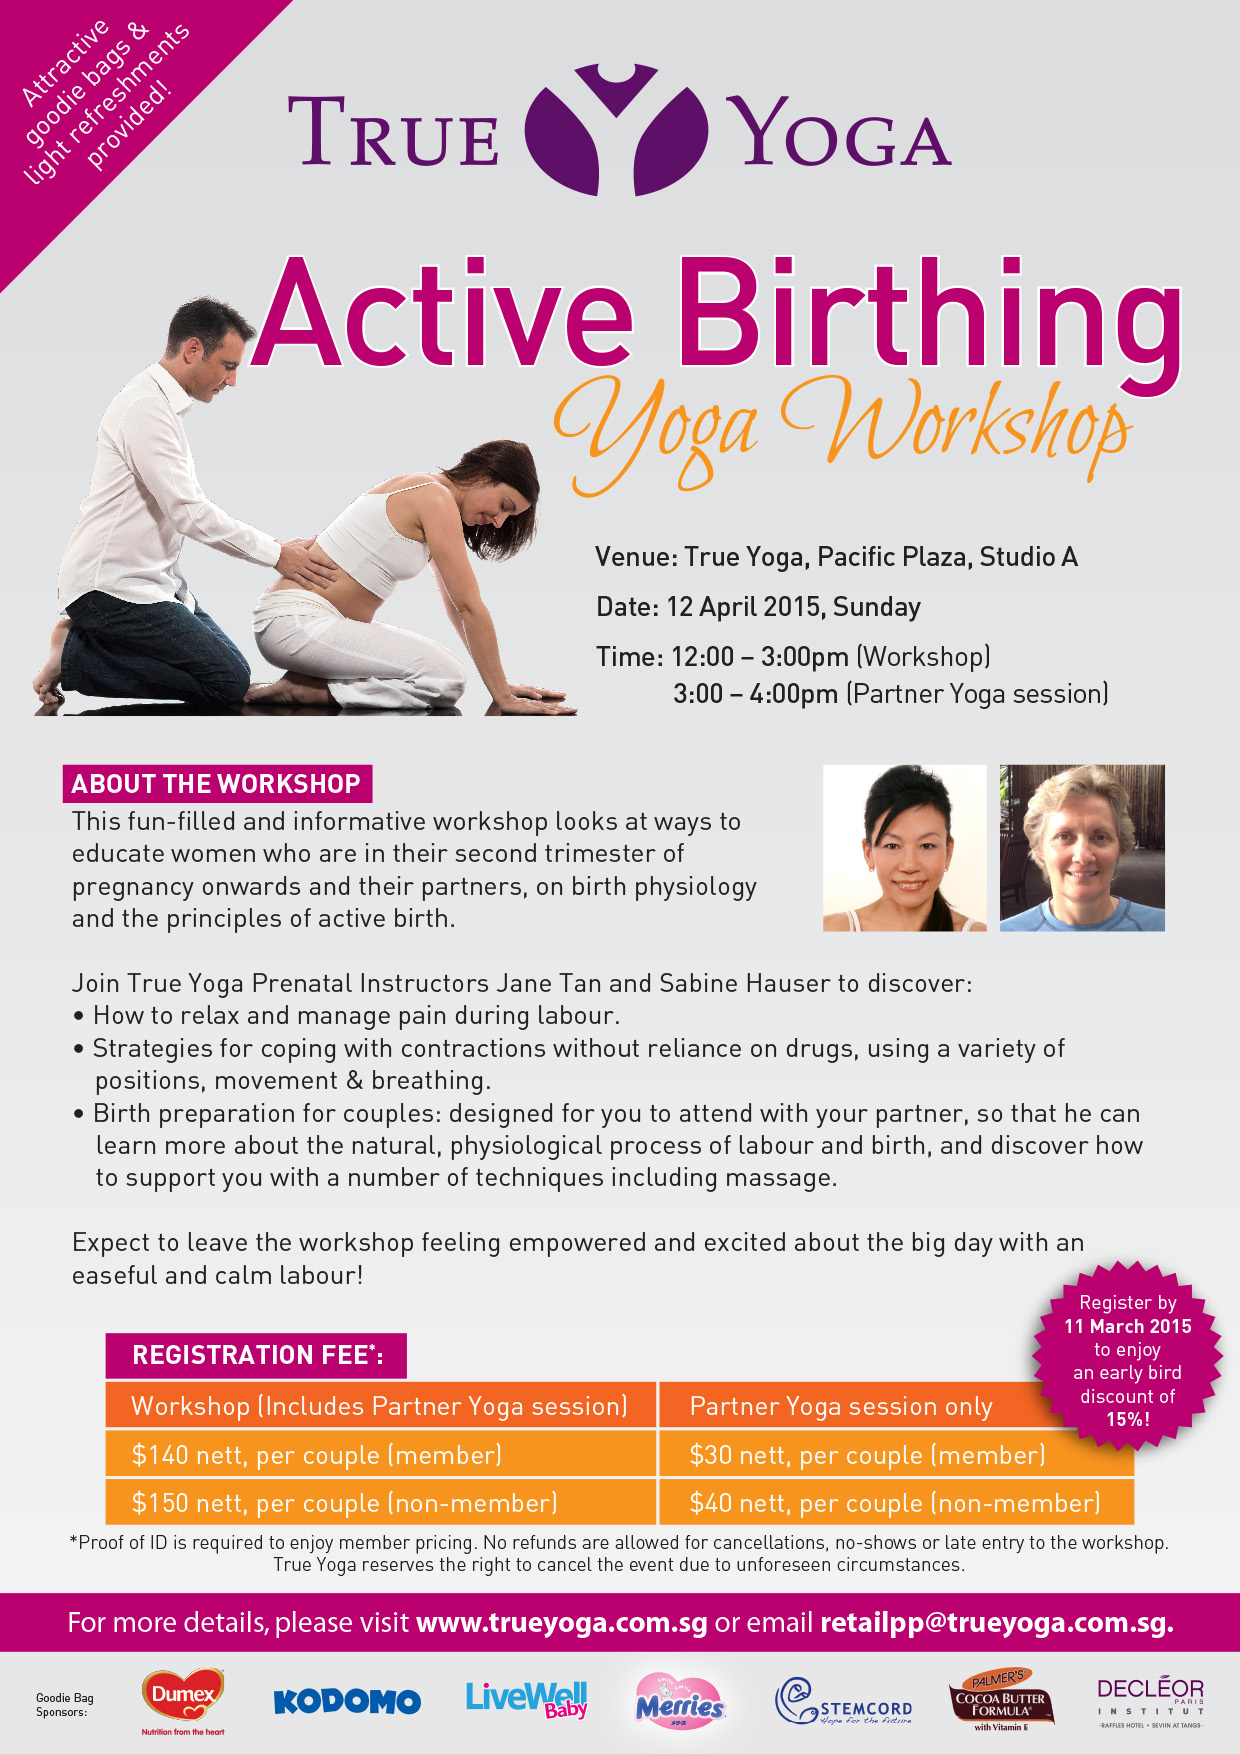 True Yoga Active Birthing Workshop 2015